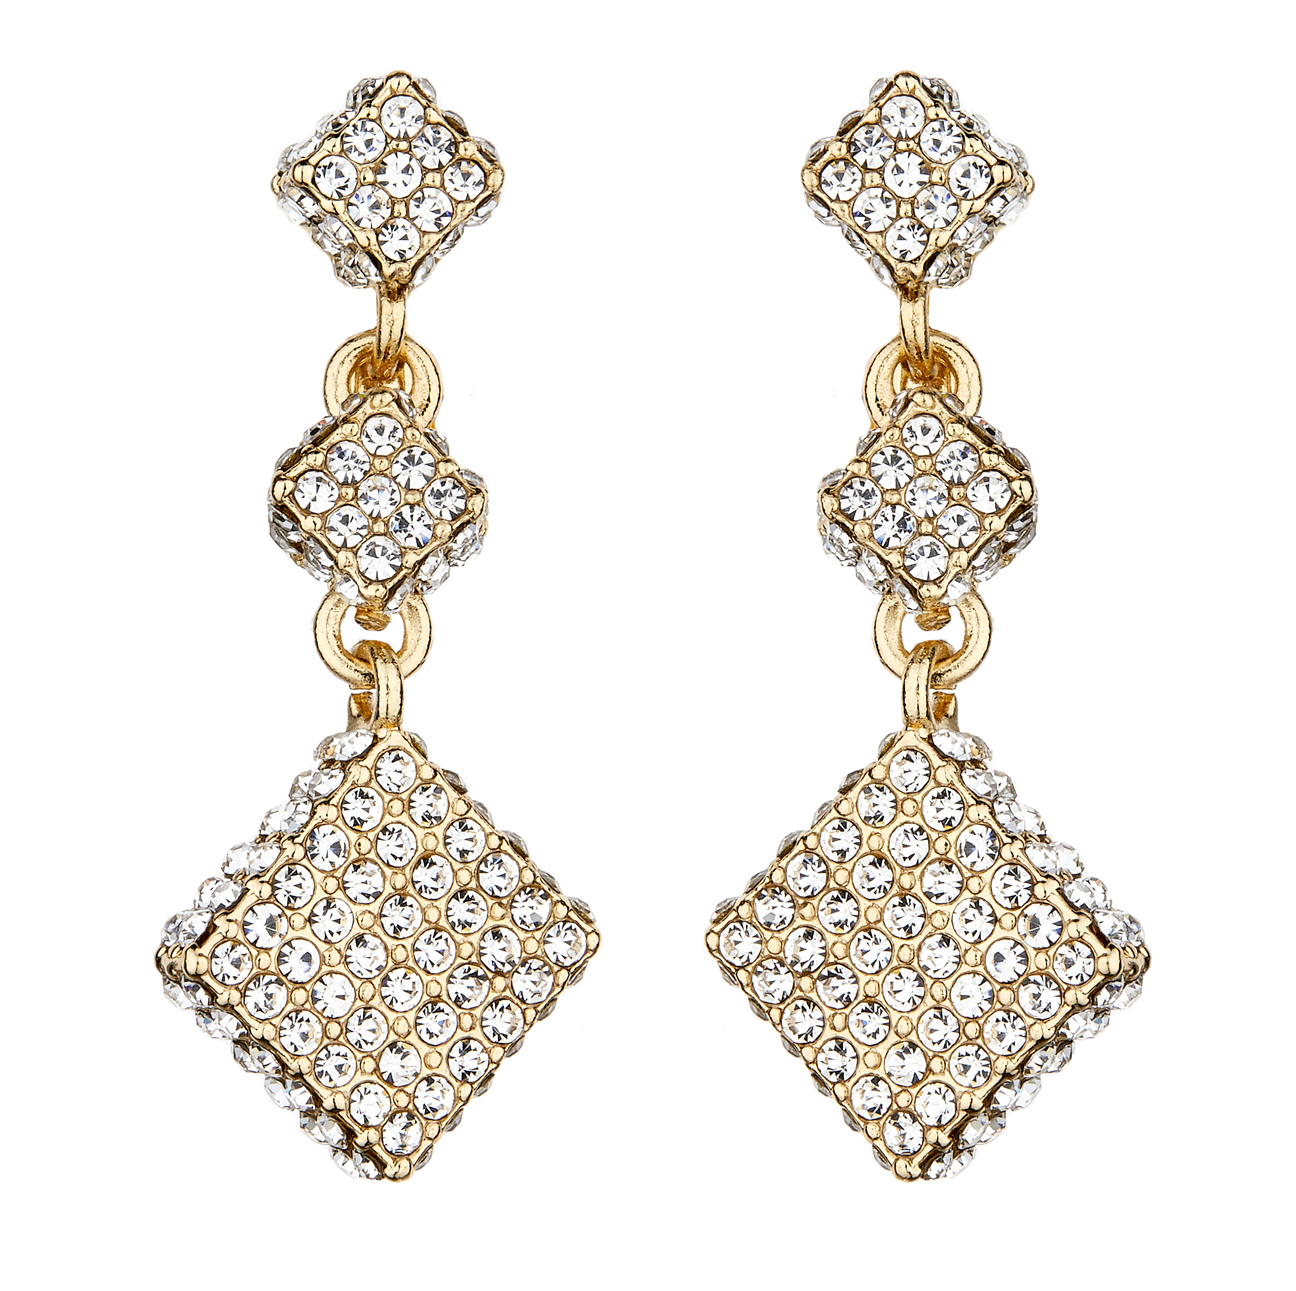 Clip On Earrings - Bolbe - gold dangle earring with two linked clear crystal cubes and square